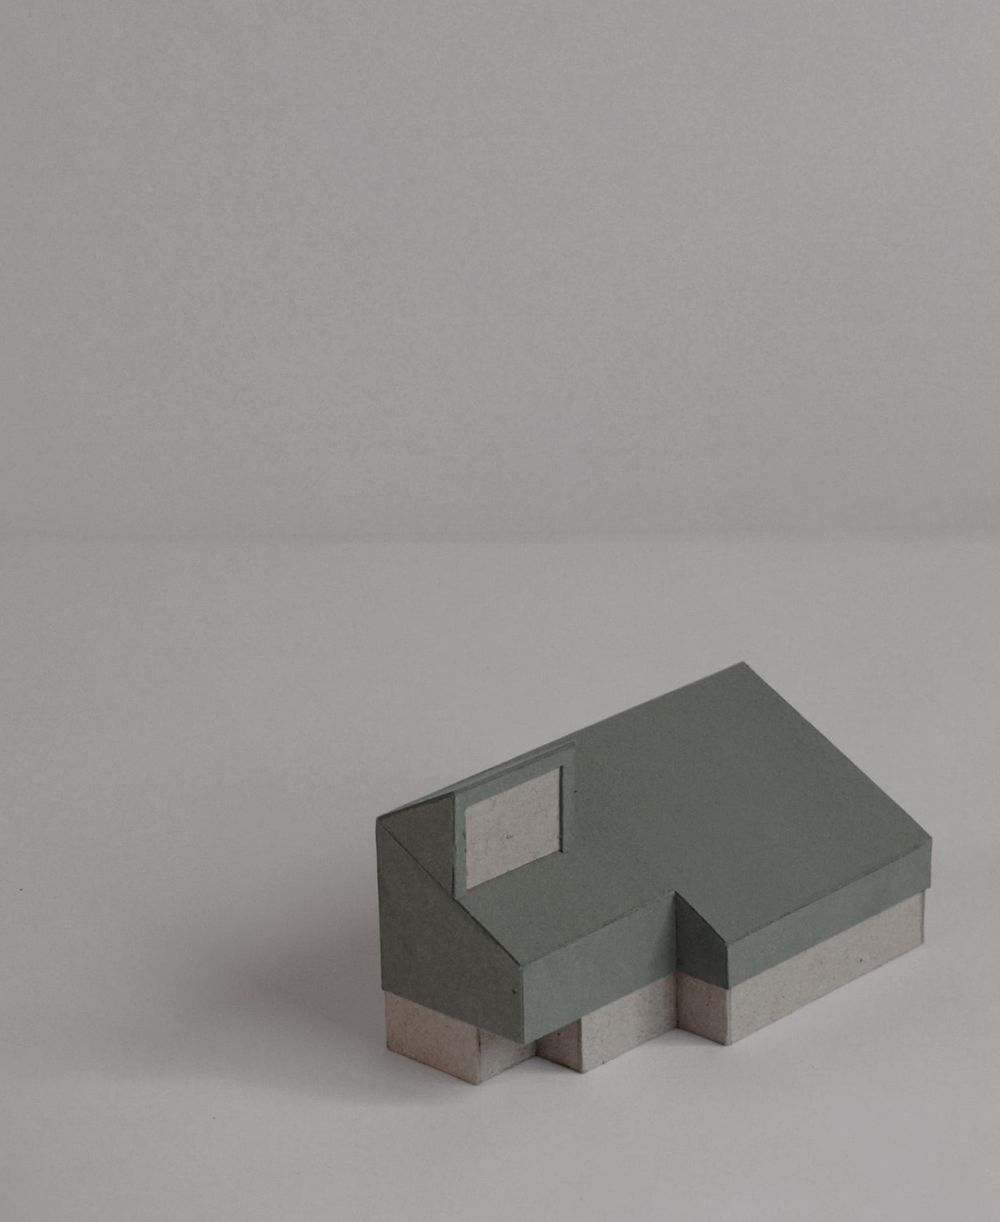 Scale model of the proposed office and workspace on Claylands Avenue designed by From Works.